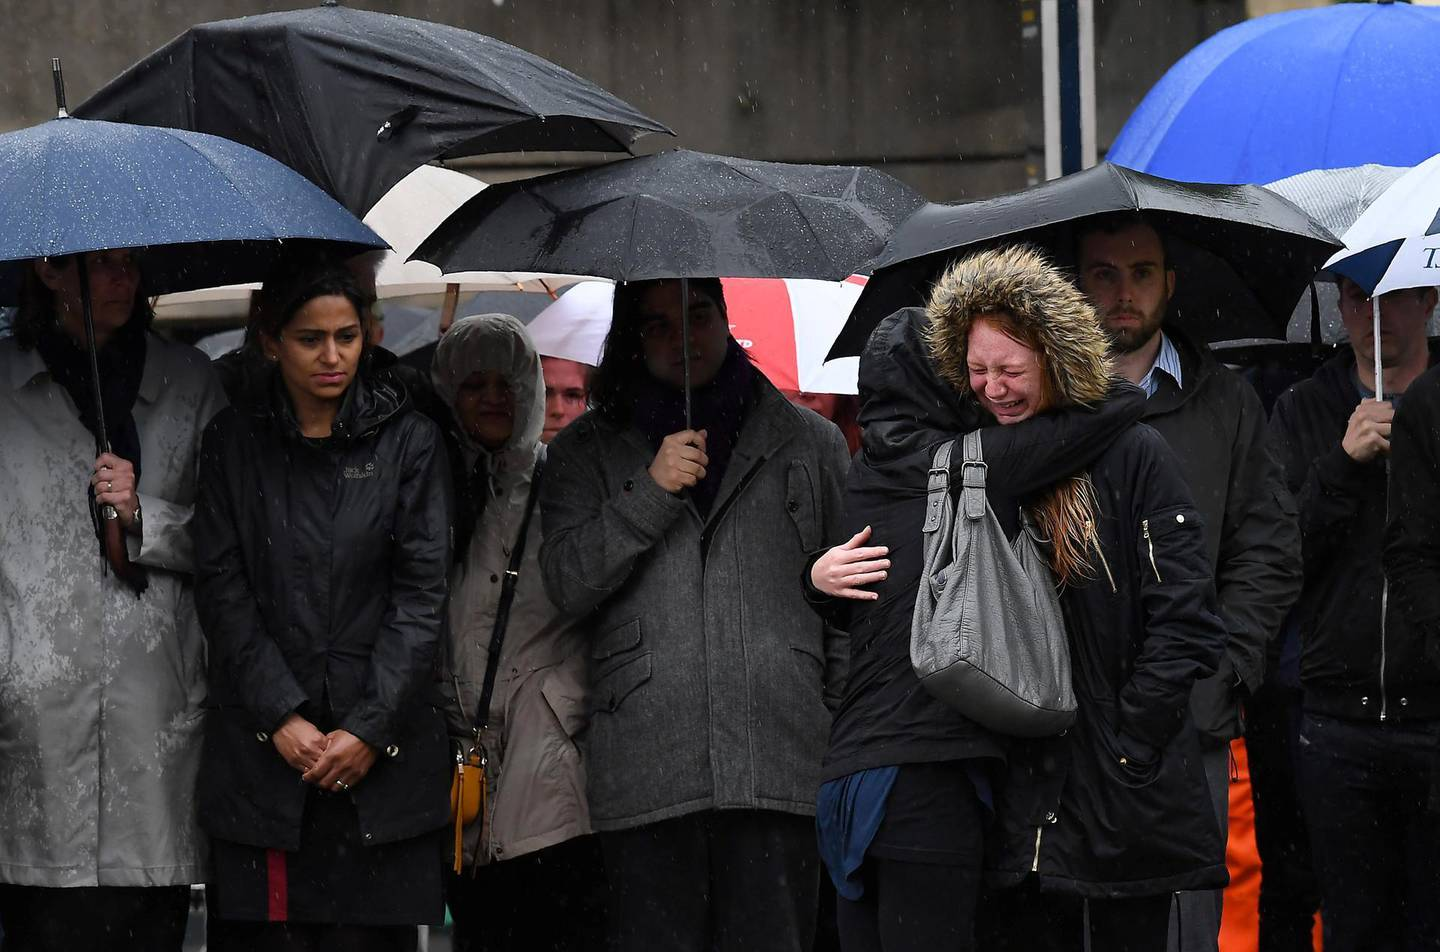 A woman reacts as people observe a minutes' silence at south-side of London Bridge in London on June 6, 2017, in memory of the victims of the June 3 terror attacks. Police on Monday identified two of the three London attackers as Khuram Butt and Rachid Redouane, after Britain's third terror assault in less than three months, as Prime Minister Theresa May came under mounting pressure over security just days ahead of elections. / AFP PHOTO / Justin TALLIS